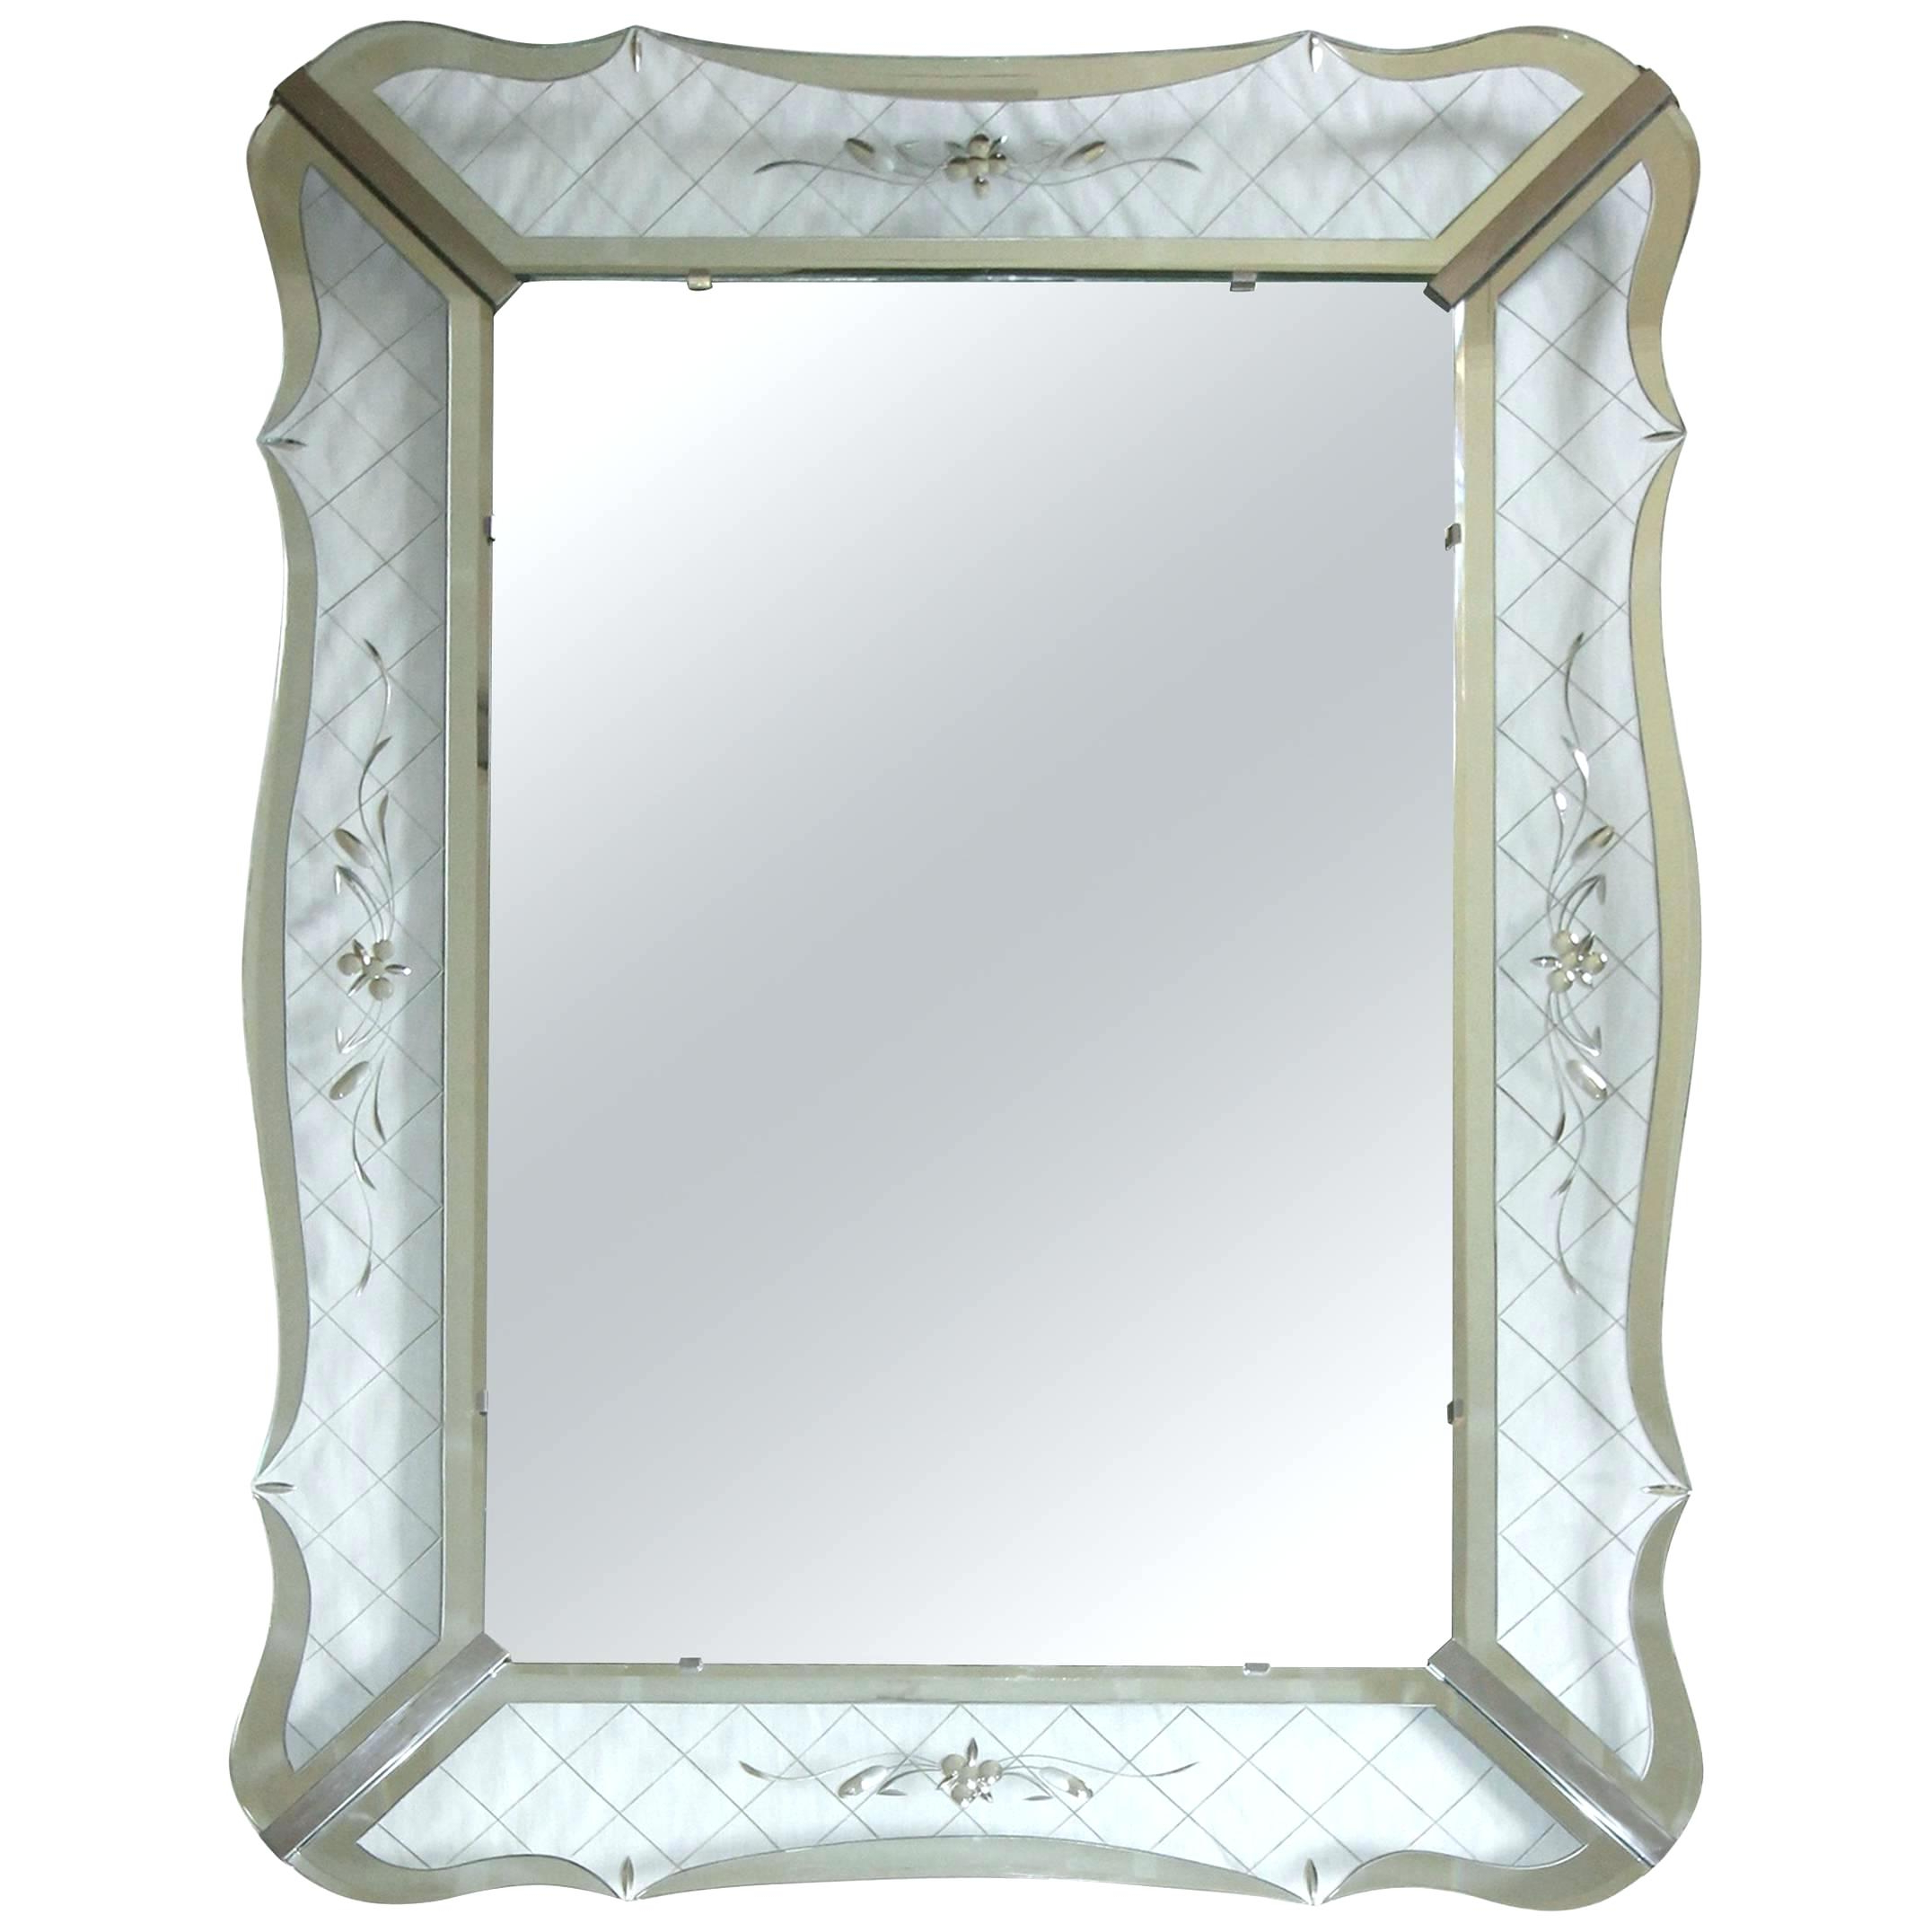 Full Length Wavy Wall Mirrors Inside Well Known Wavy Wall Mirror – Happyeaster (View 4 of 20)